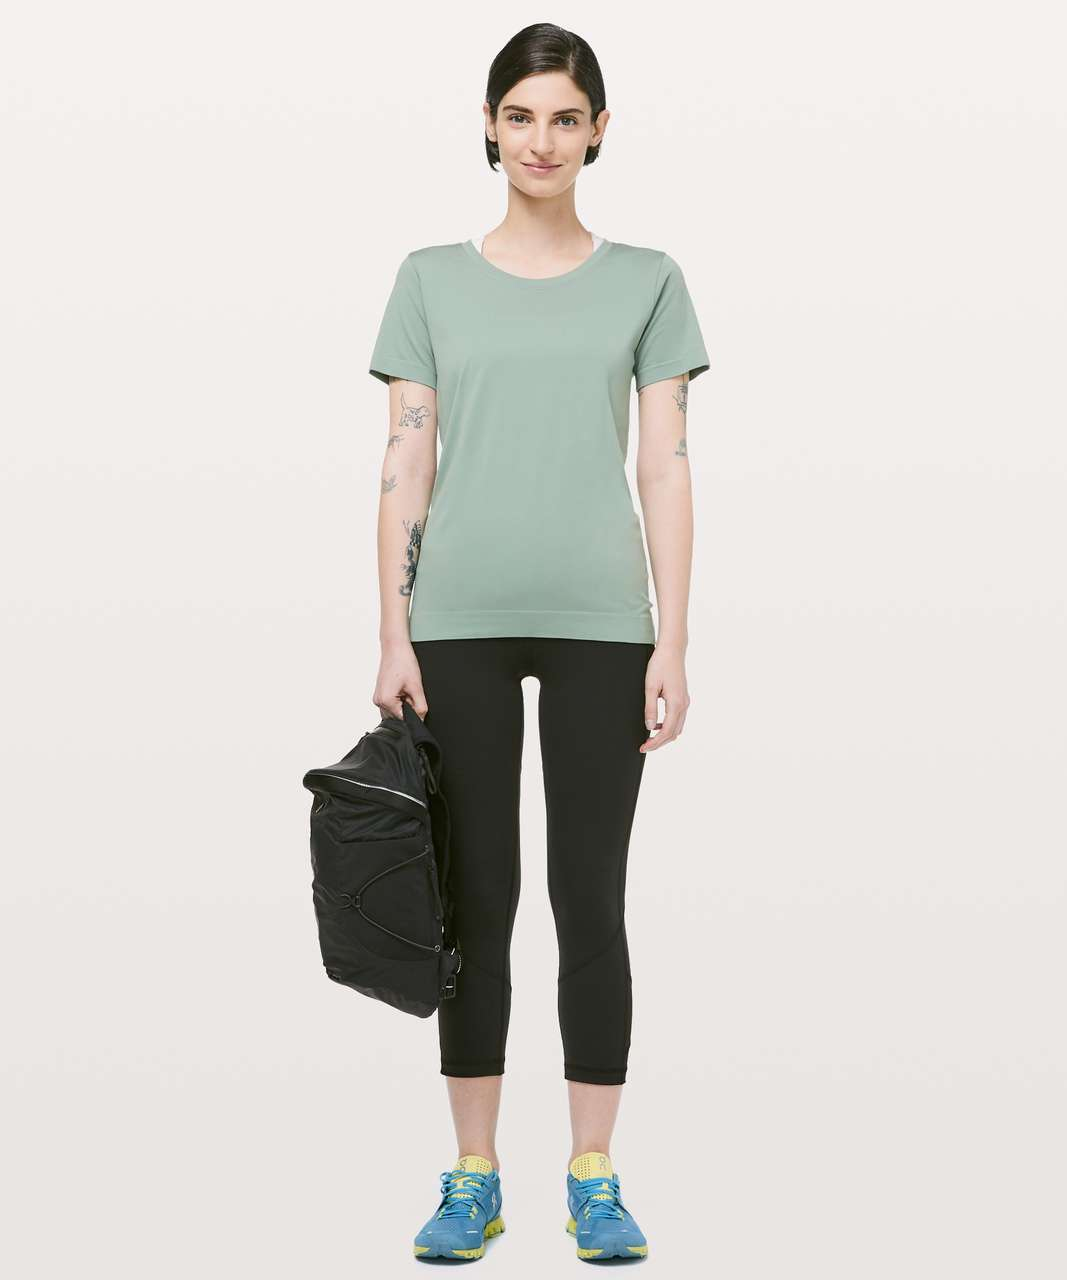 Lululemon Swiftly Tech Short Sleeve (Breeze) *Relaxed Fit - Palm Court / Palm Court